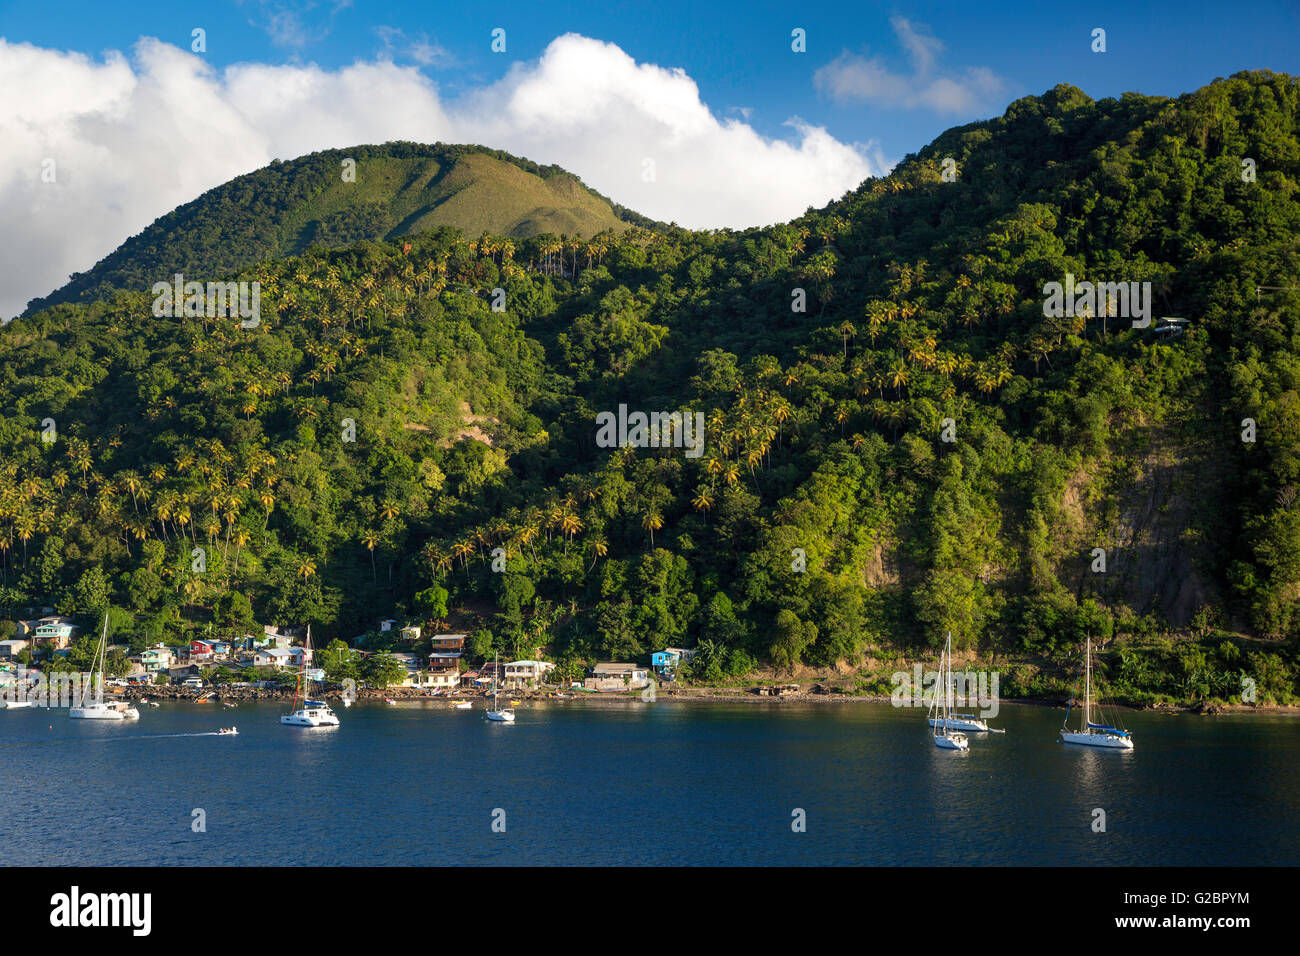 Green hillside over Soufriere, St Lucia, West Indies - Stock Image